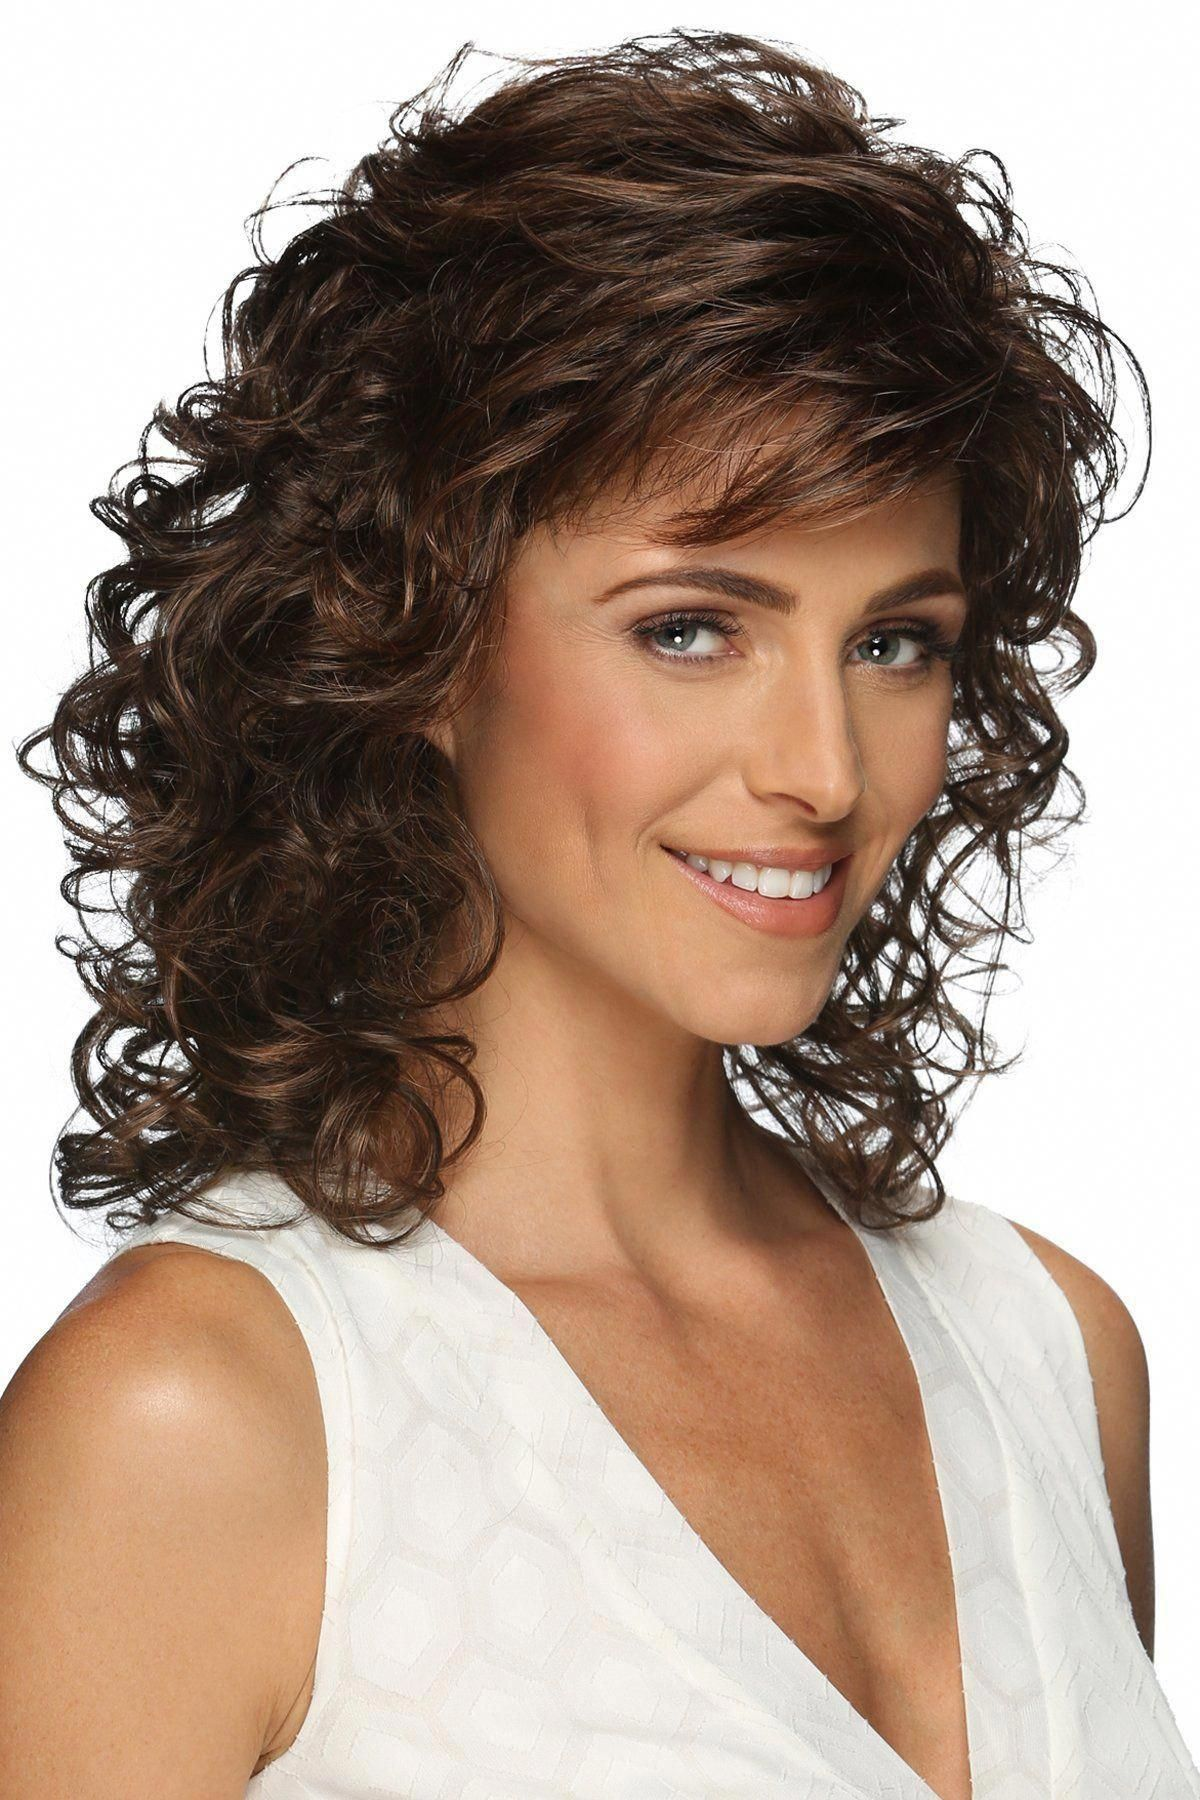 6 Great Shoulder Length Style Ideas For curly hairstyles